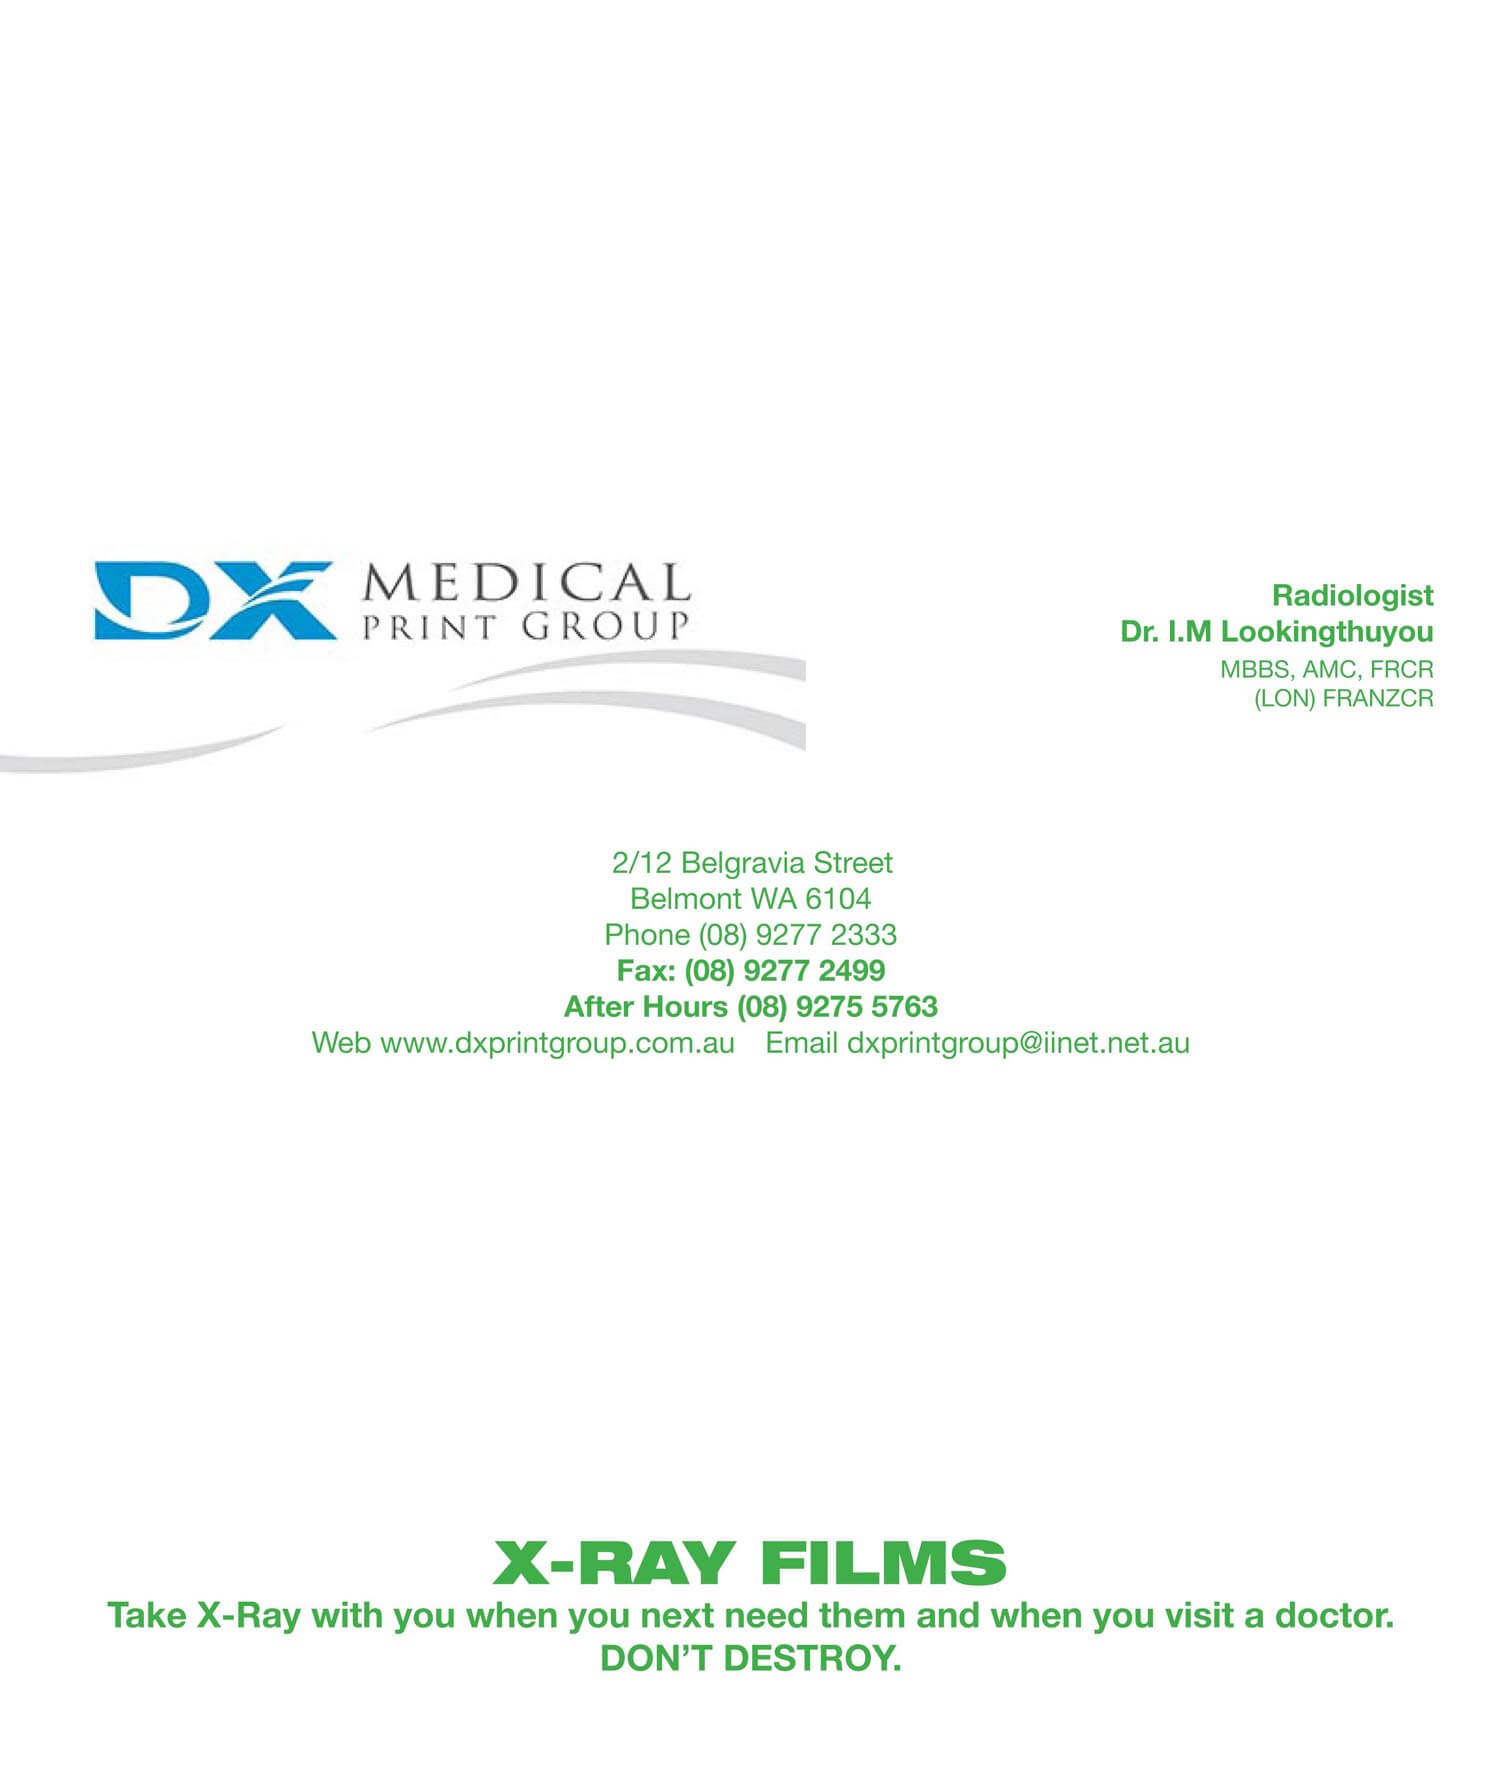 Gallery - Medical Stationery Portfolio - DX Medical Stationery